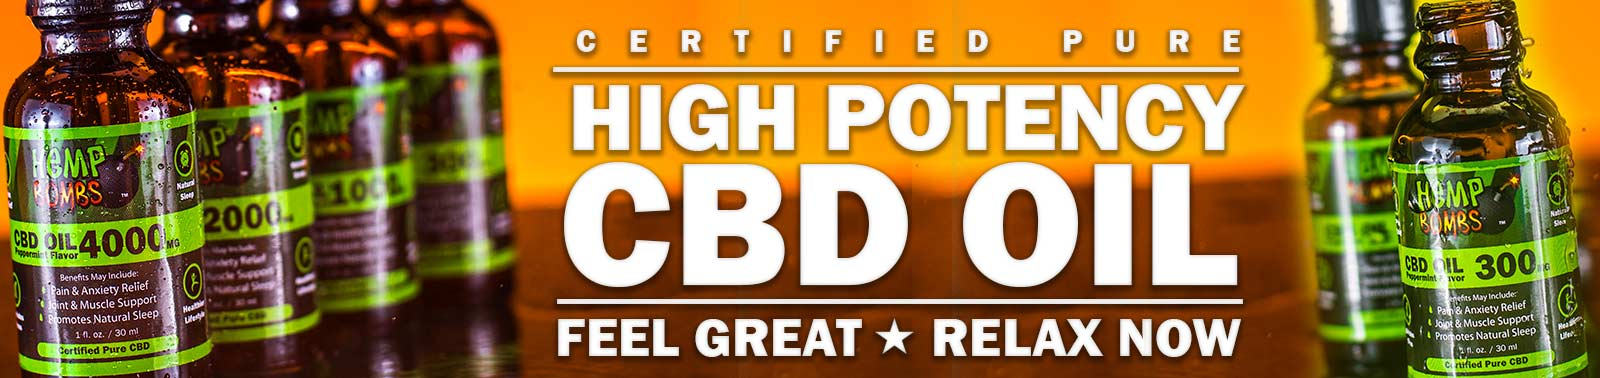 High Potency CBD Oil